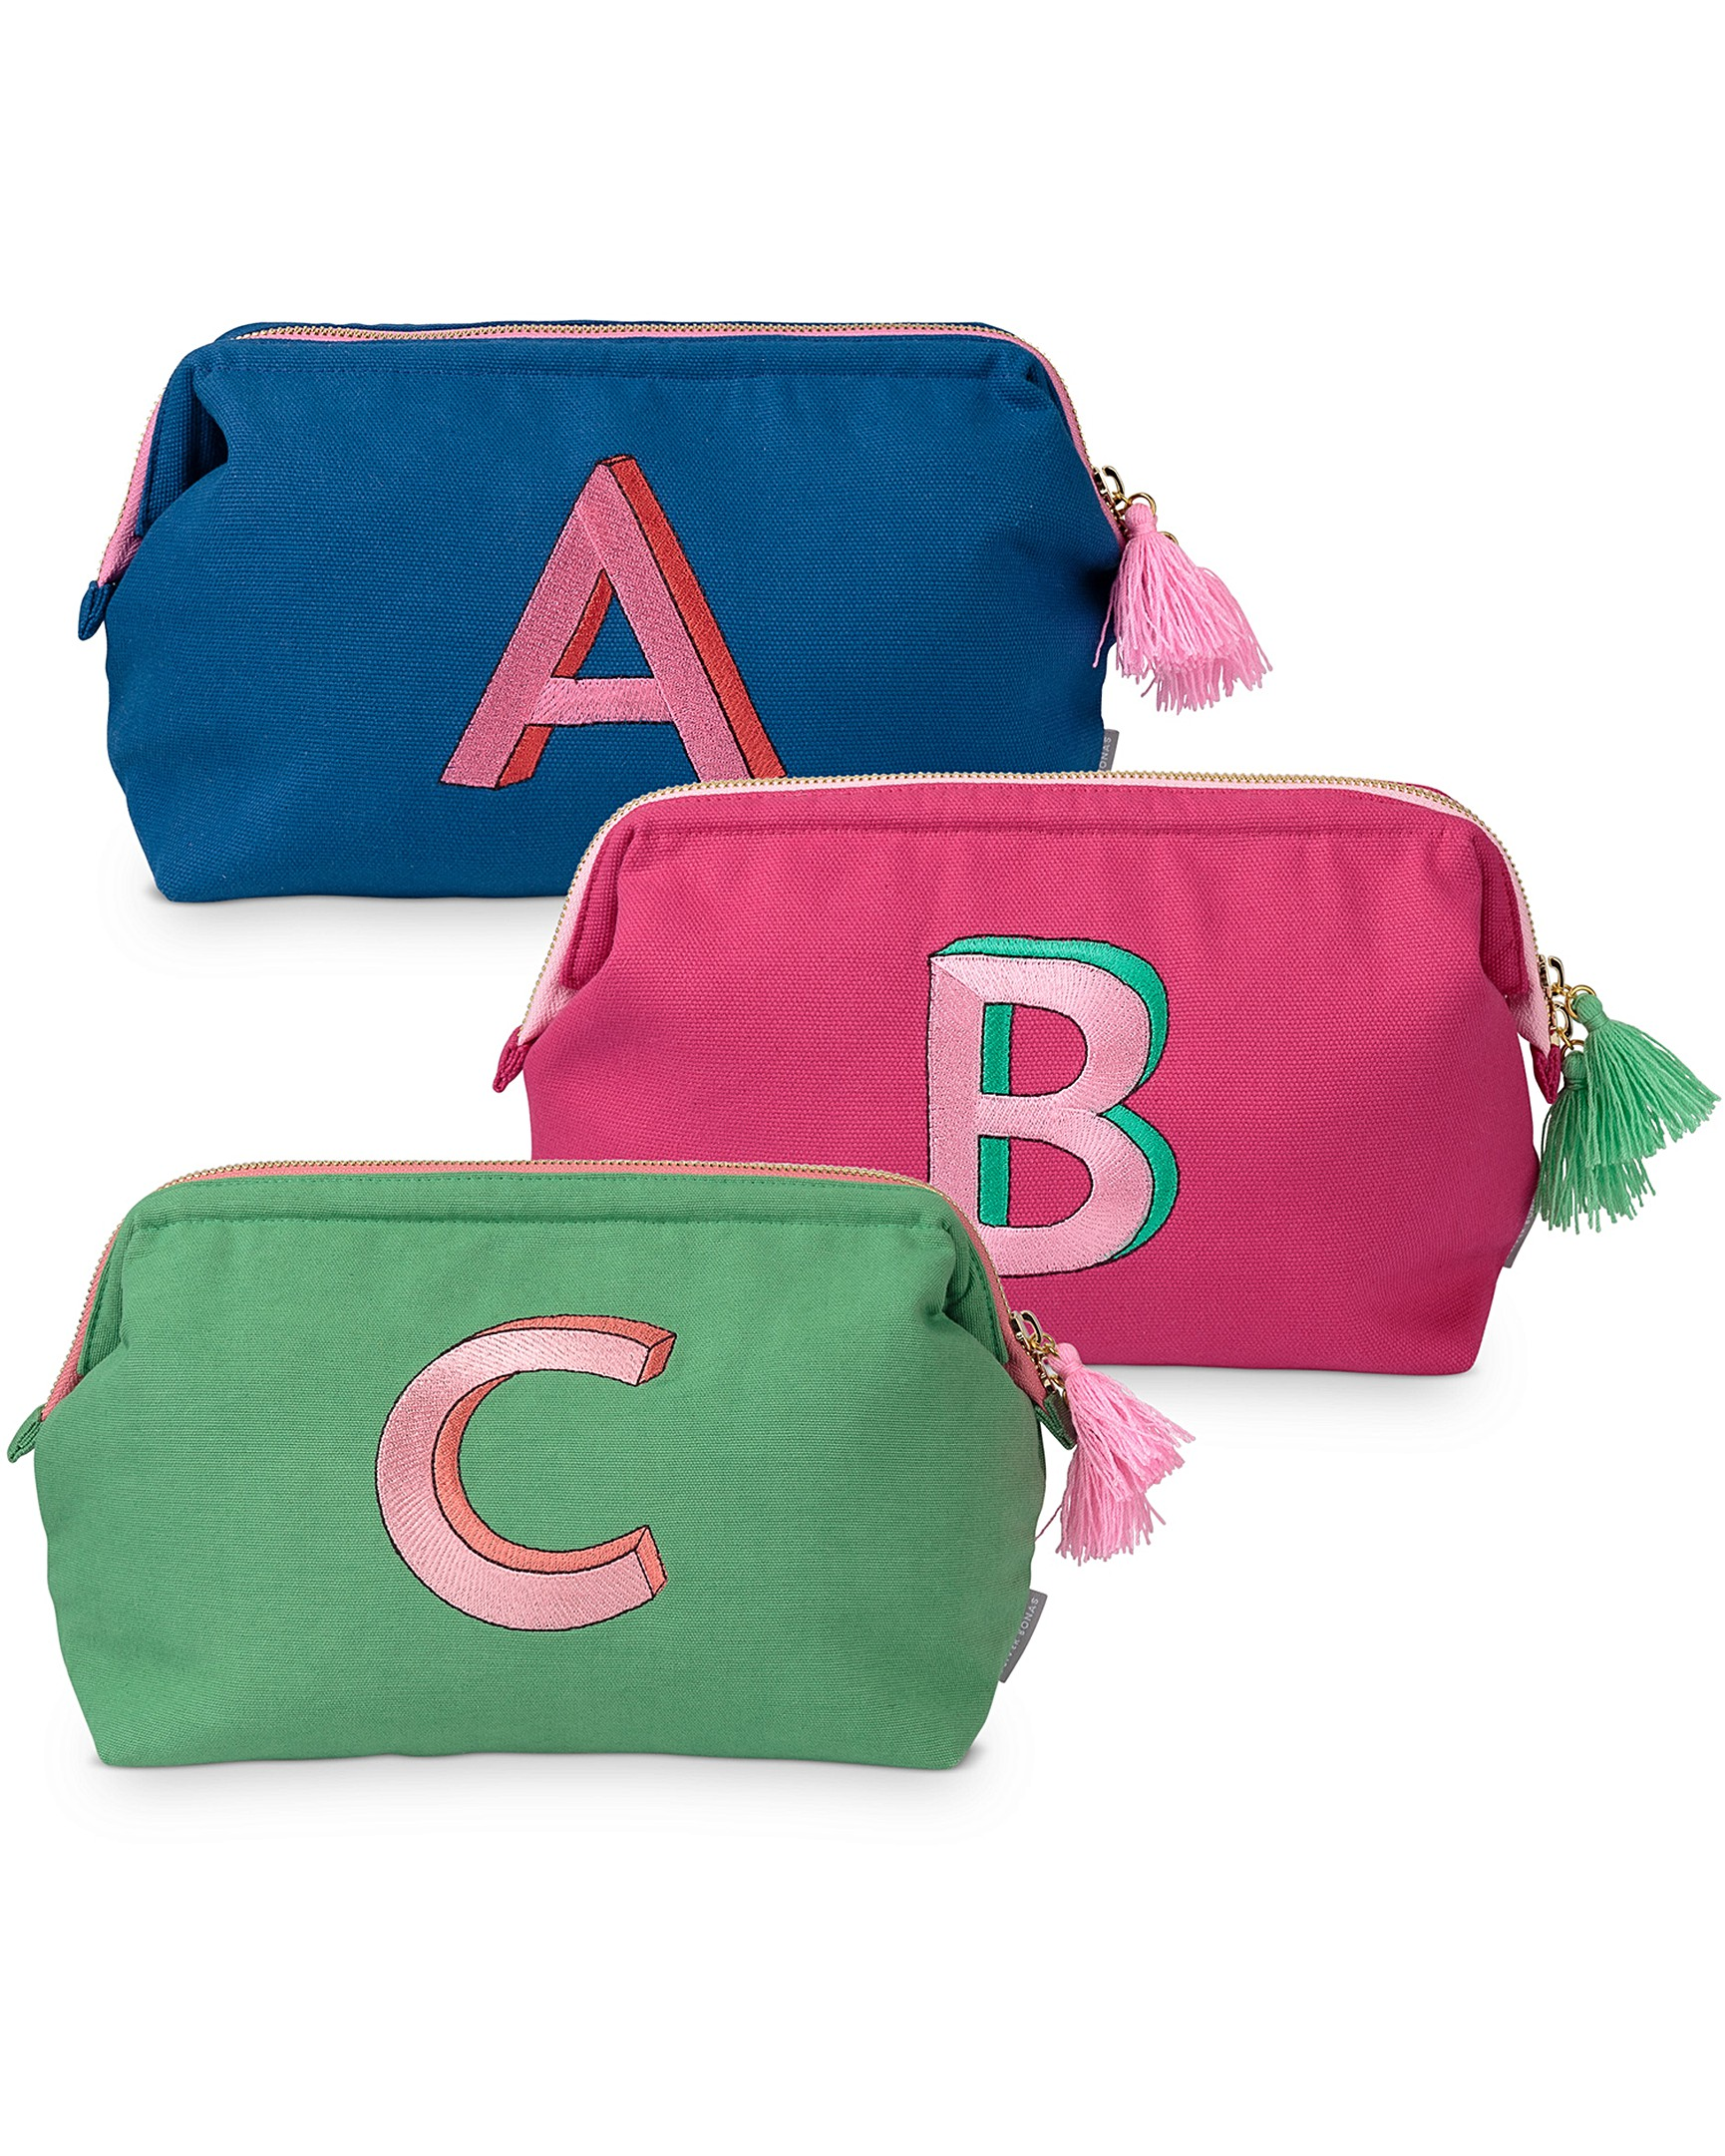 0b2e94d202 Alphabet Embroidered Wash Bag